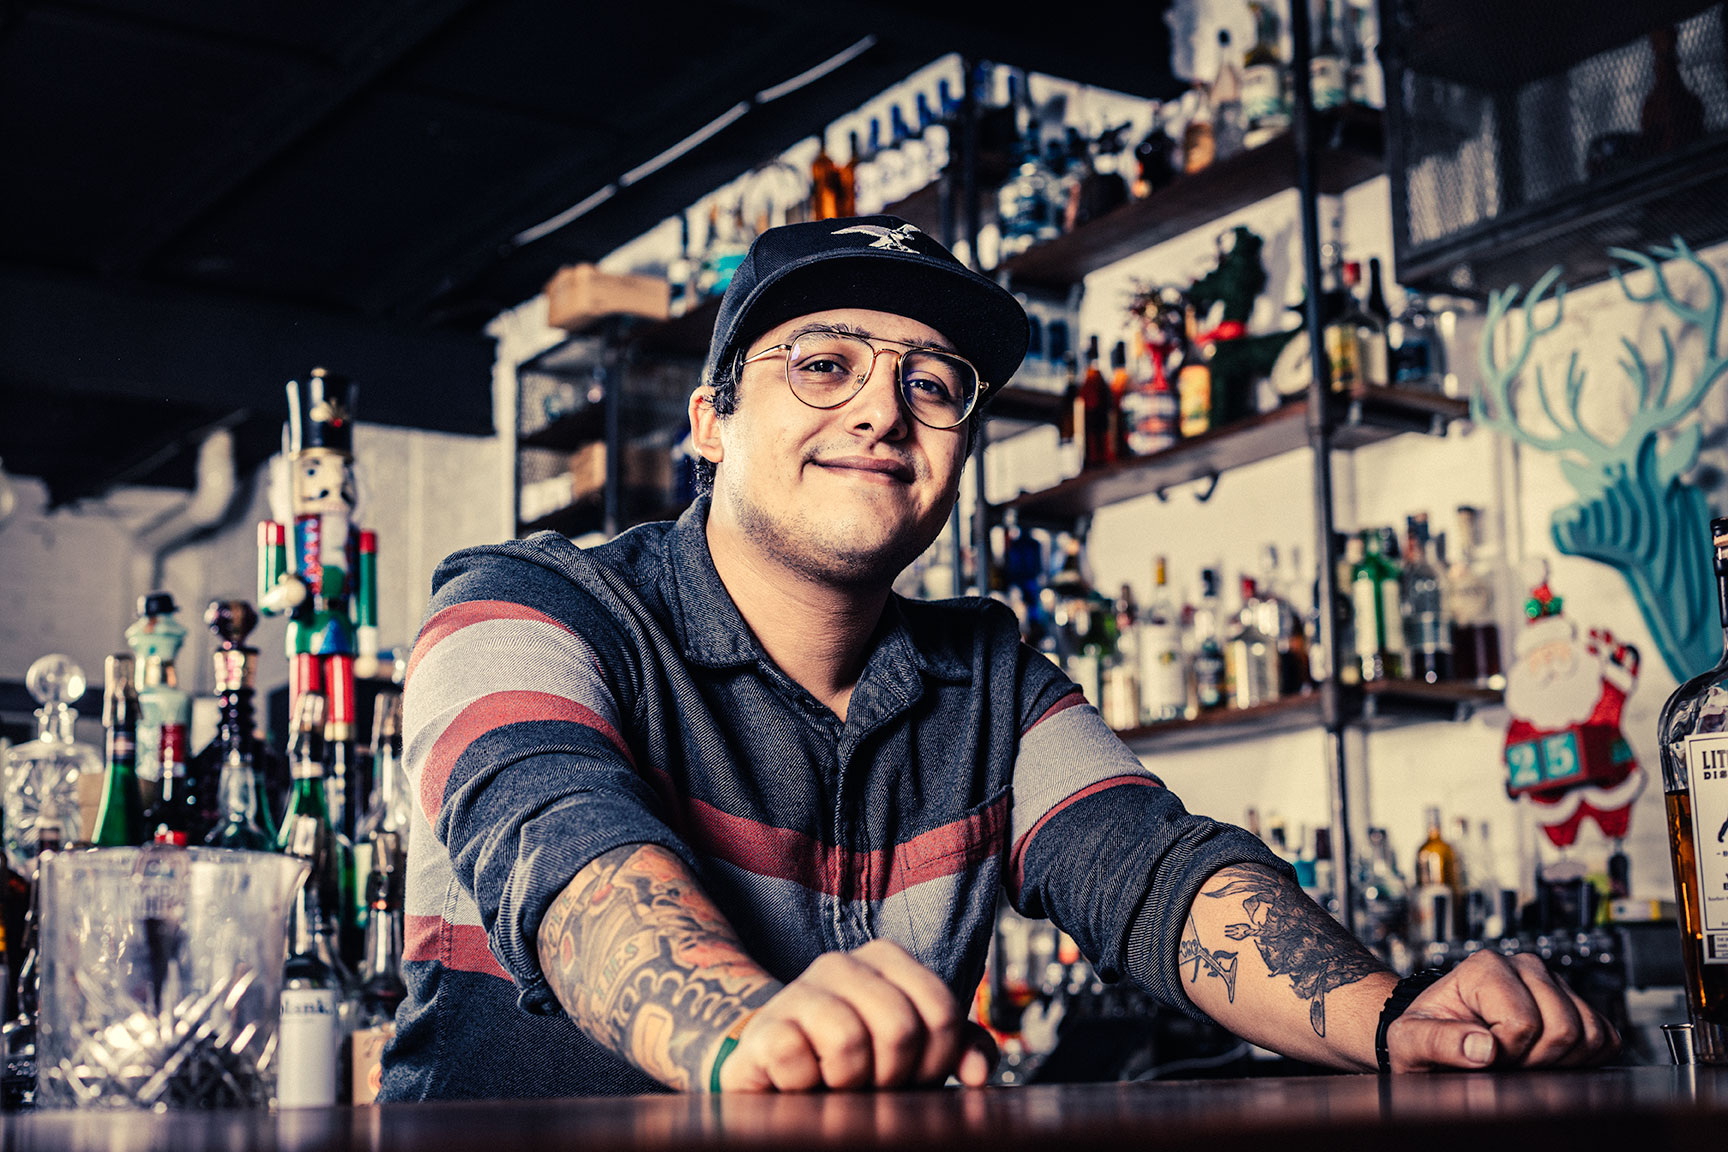 Mixology Spirit with Dustin Amore